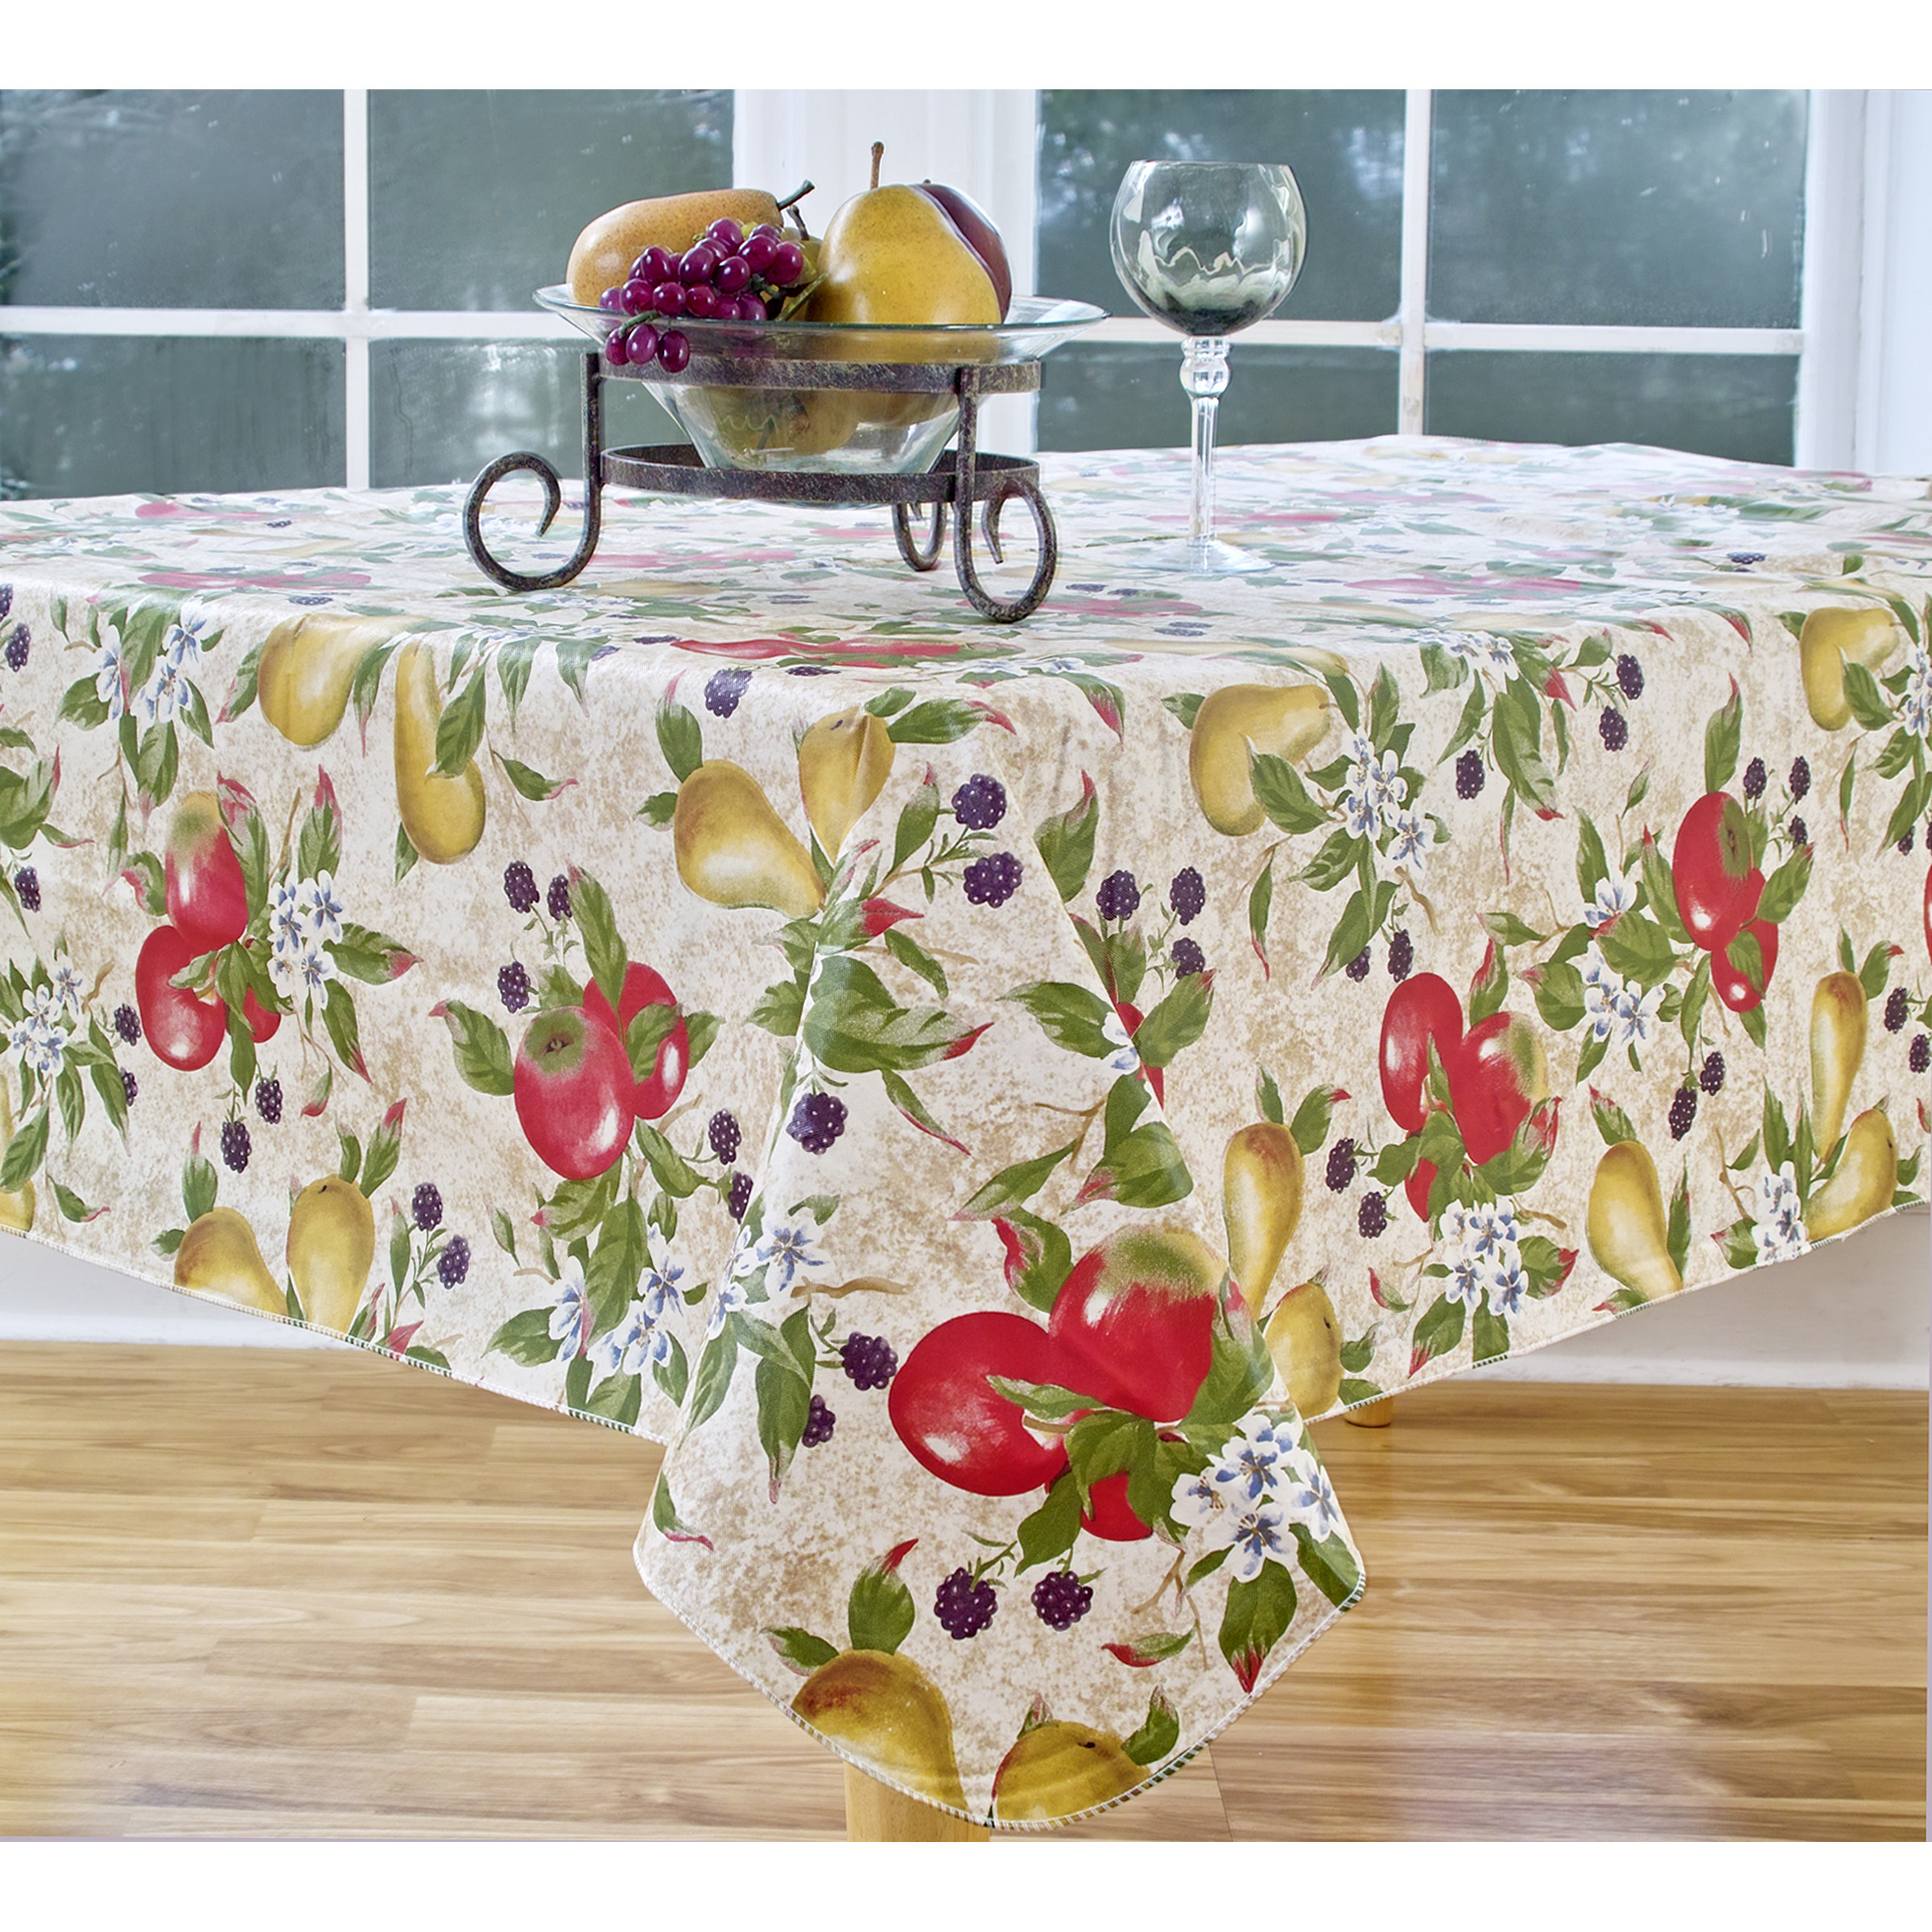 Restaurant Vinyl Tablecloths | Vinyl Tablecloths | Patterned Tablecloth